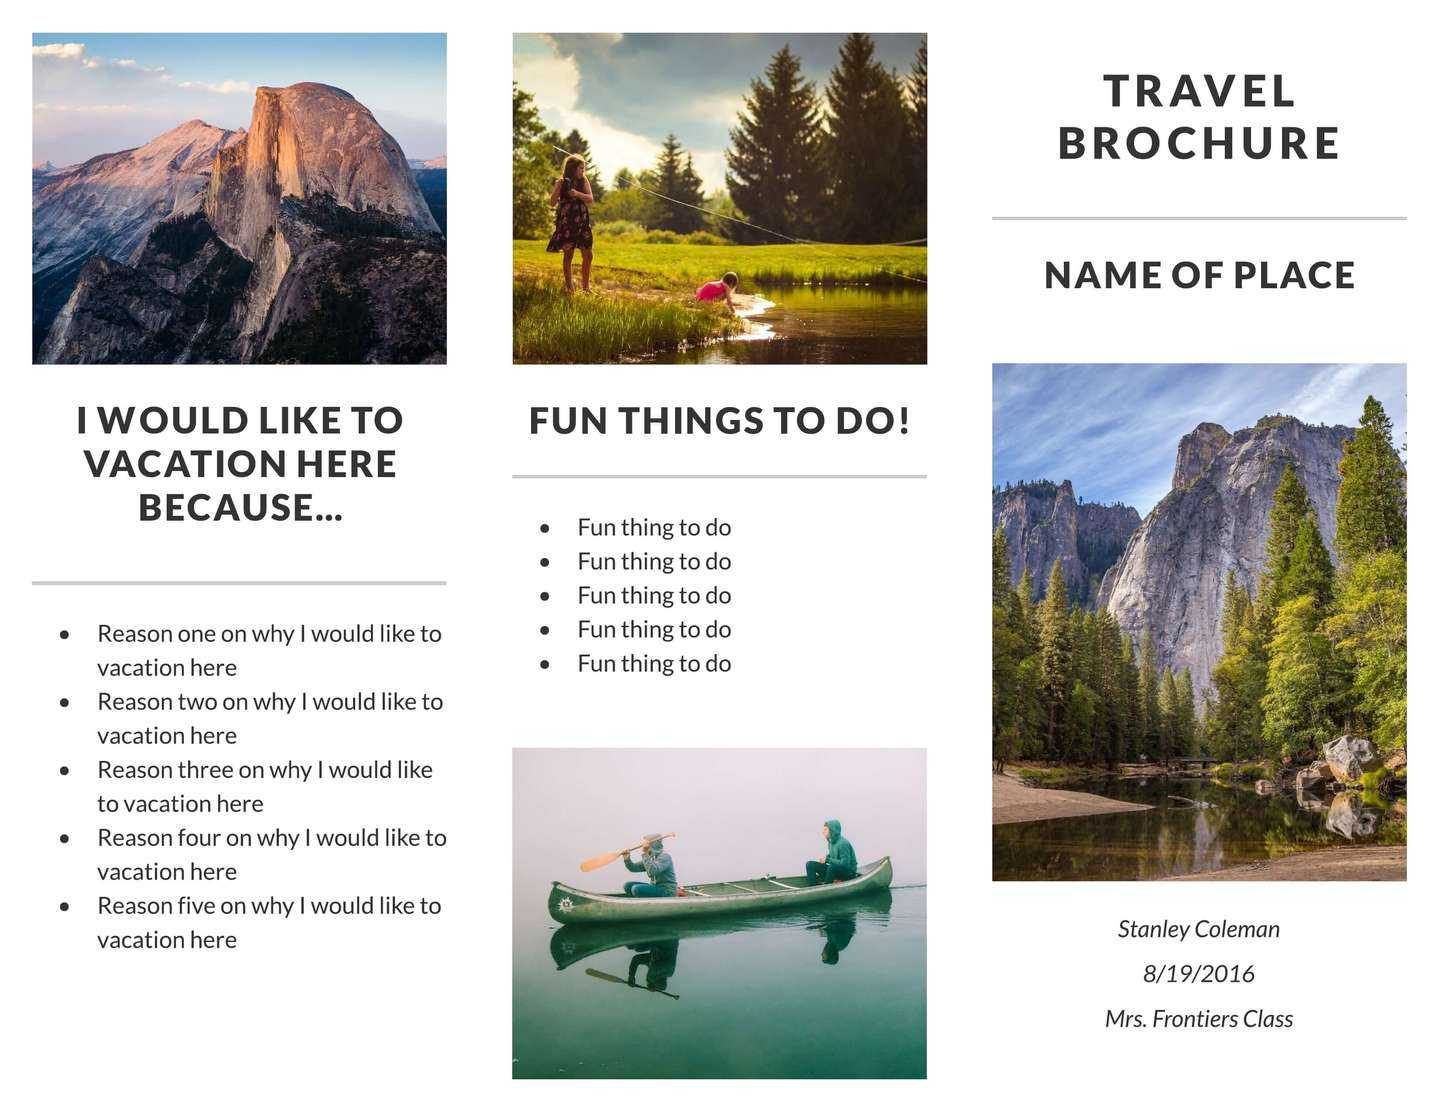 Free Travel Brochure Templates & Examples [8 Free Templates] Within Island Brochure Template